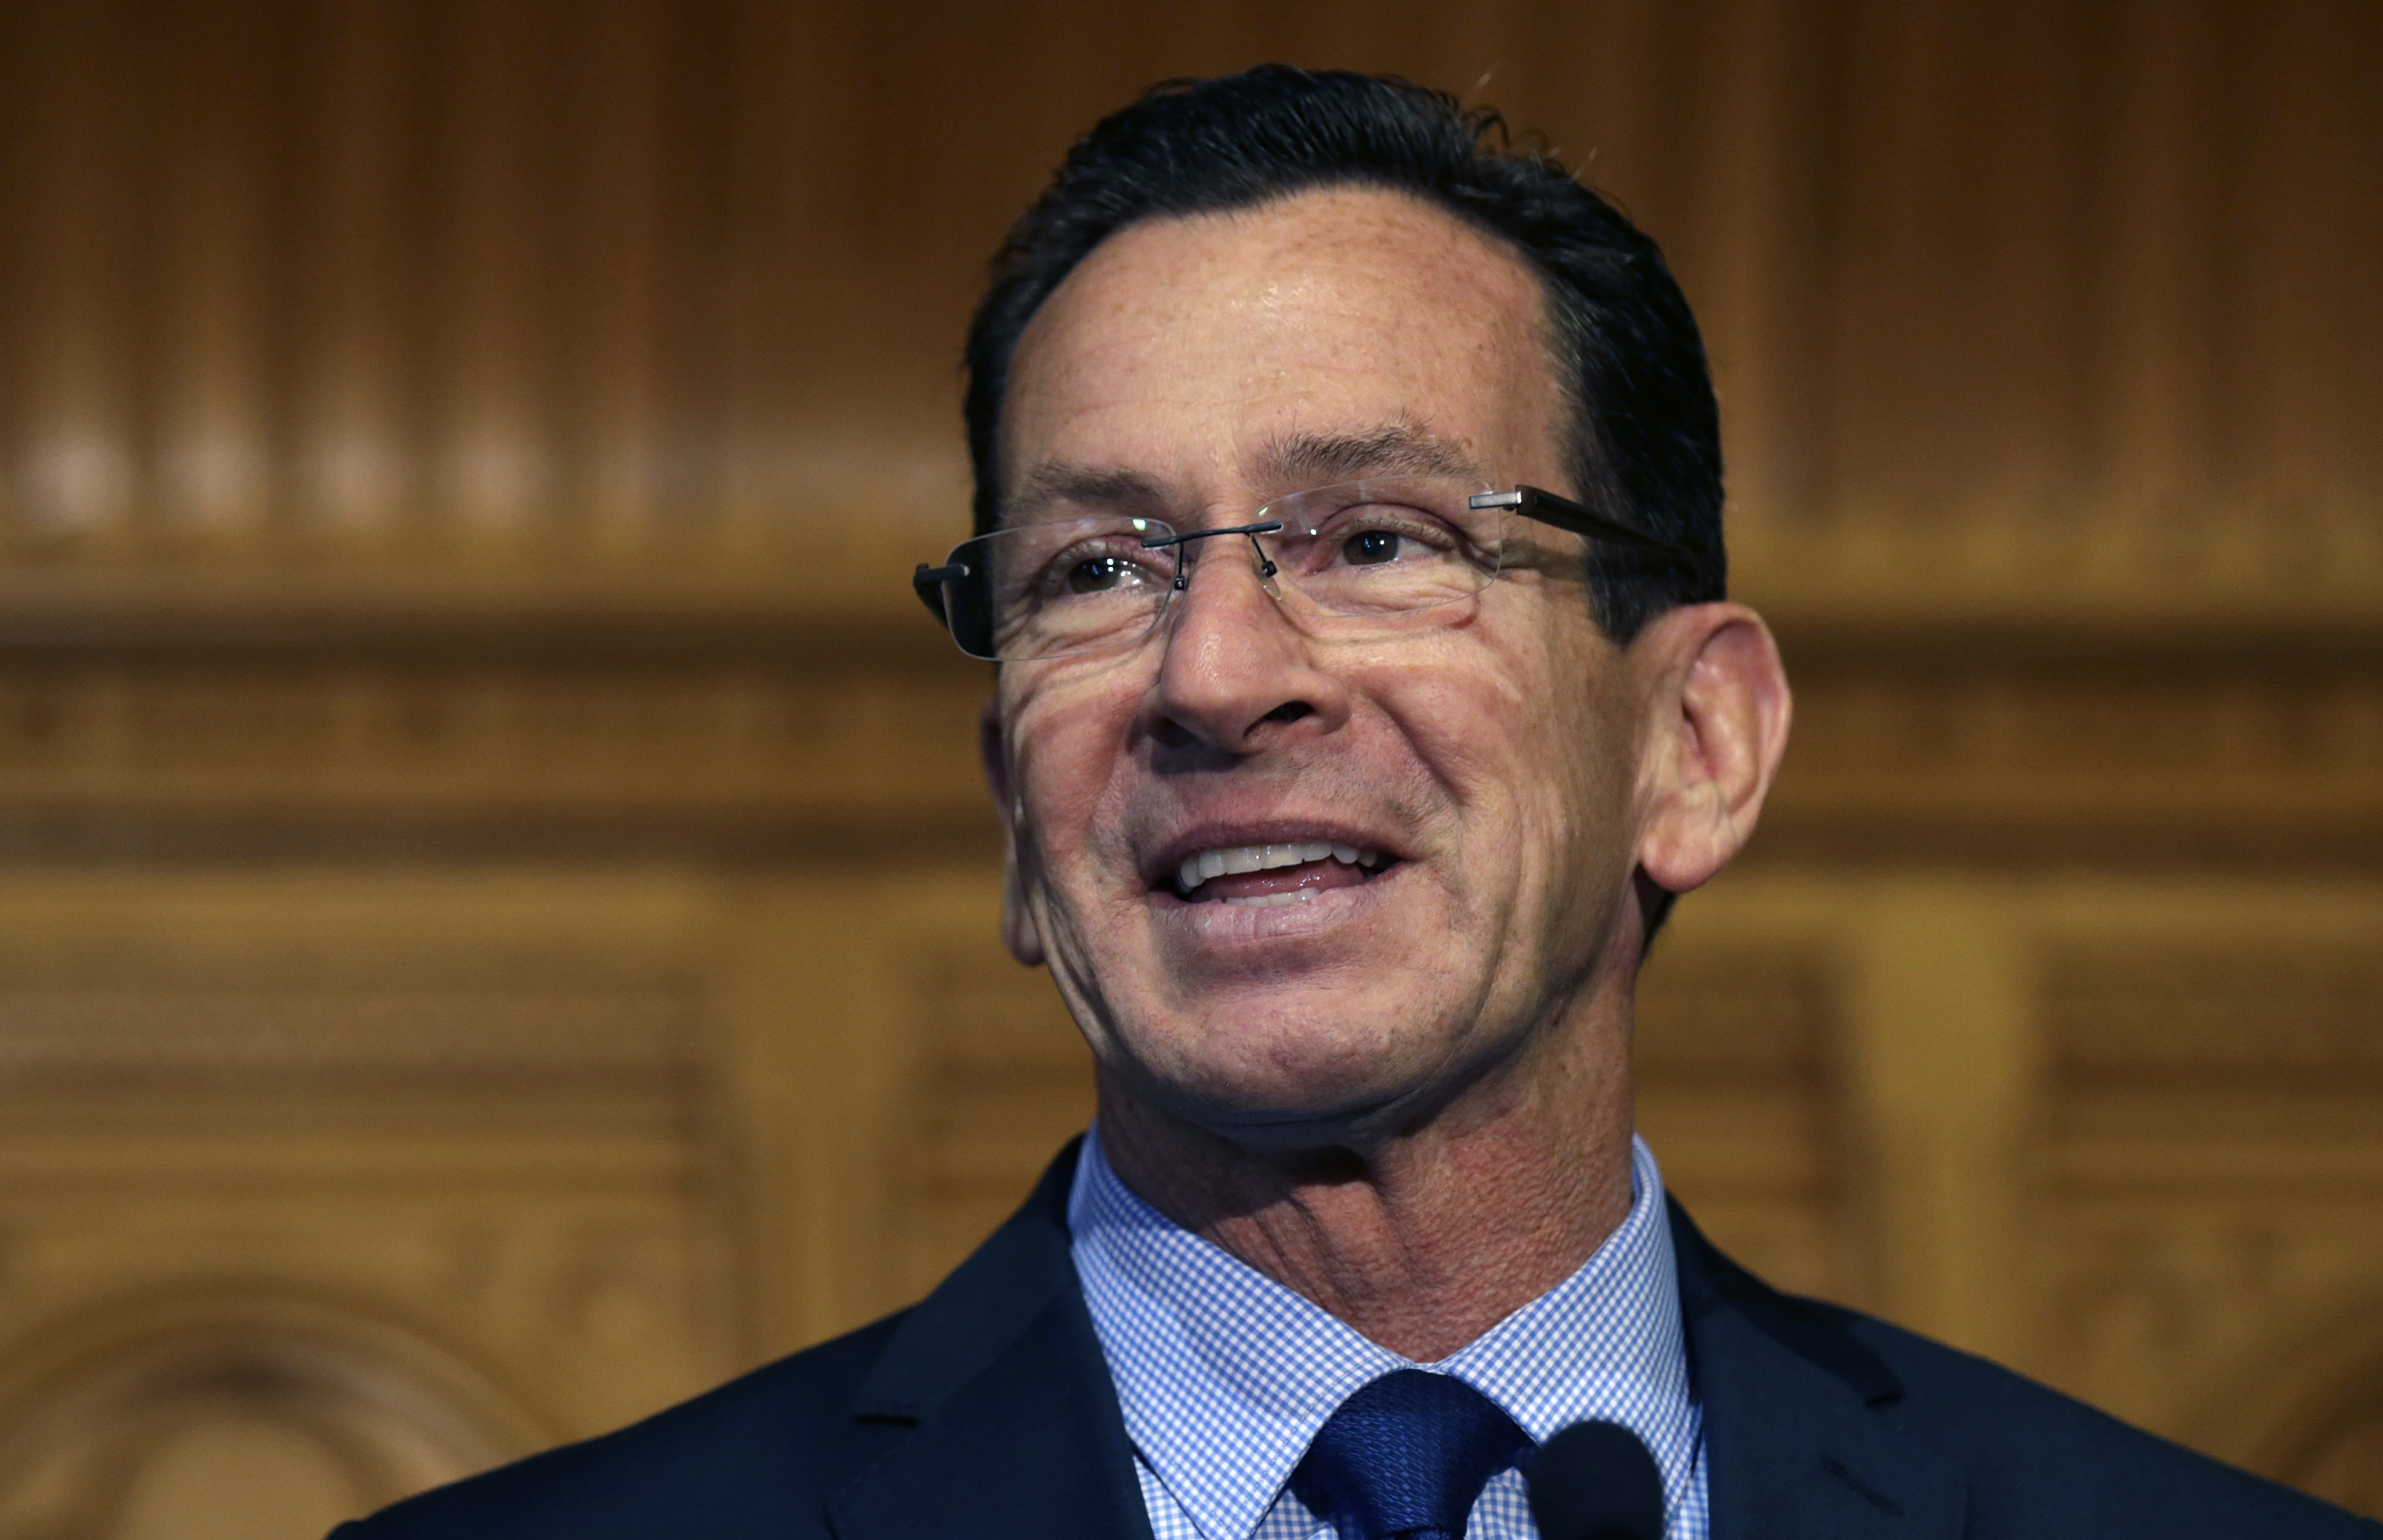 Dannel Malloy smiles as he thanks supporters at the State House in Hartford, CT, on Nov. 5, 2014.